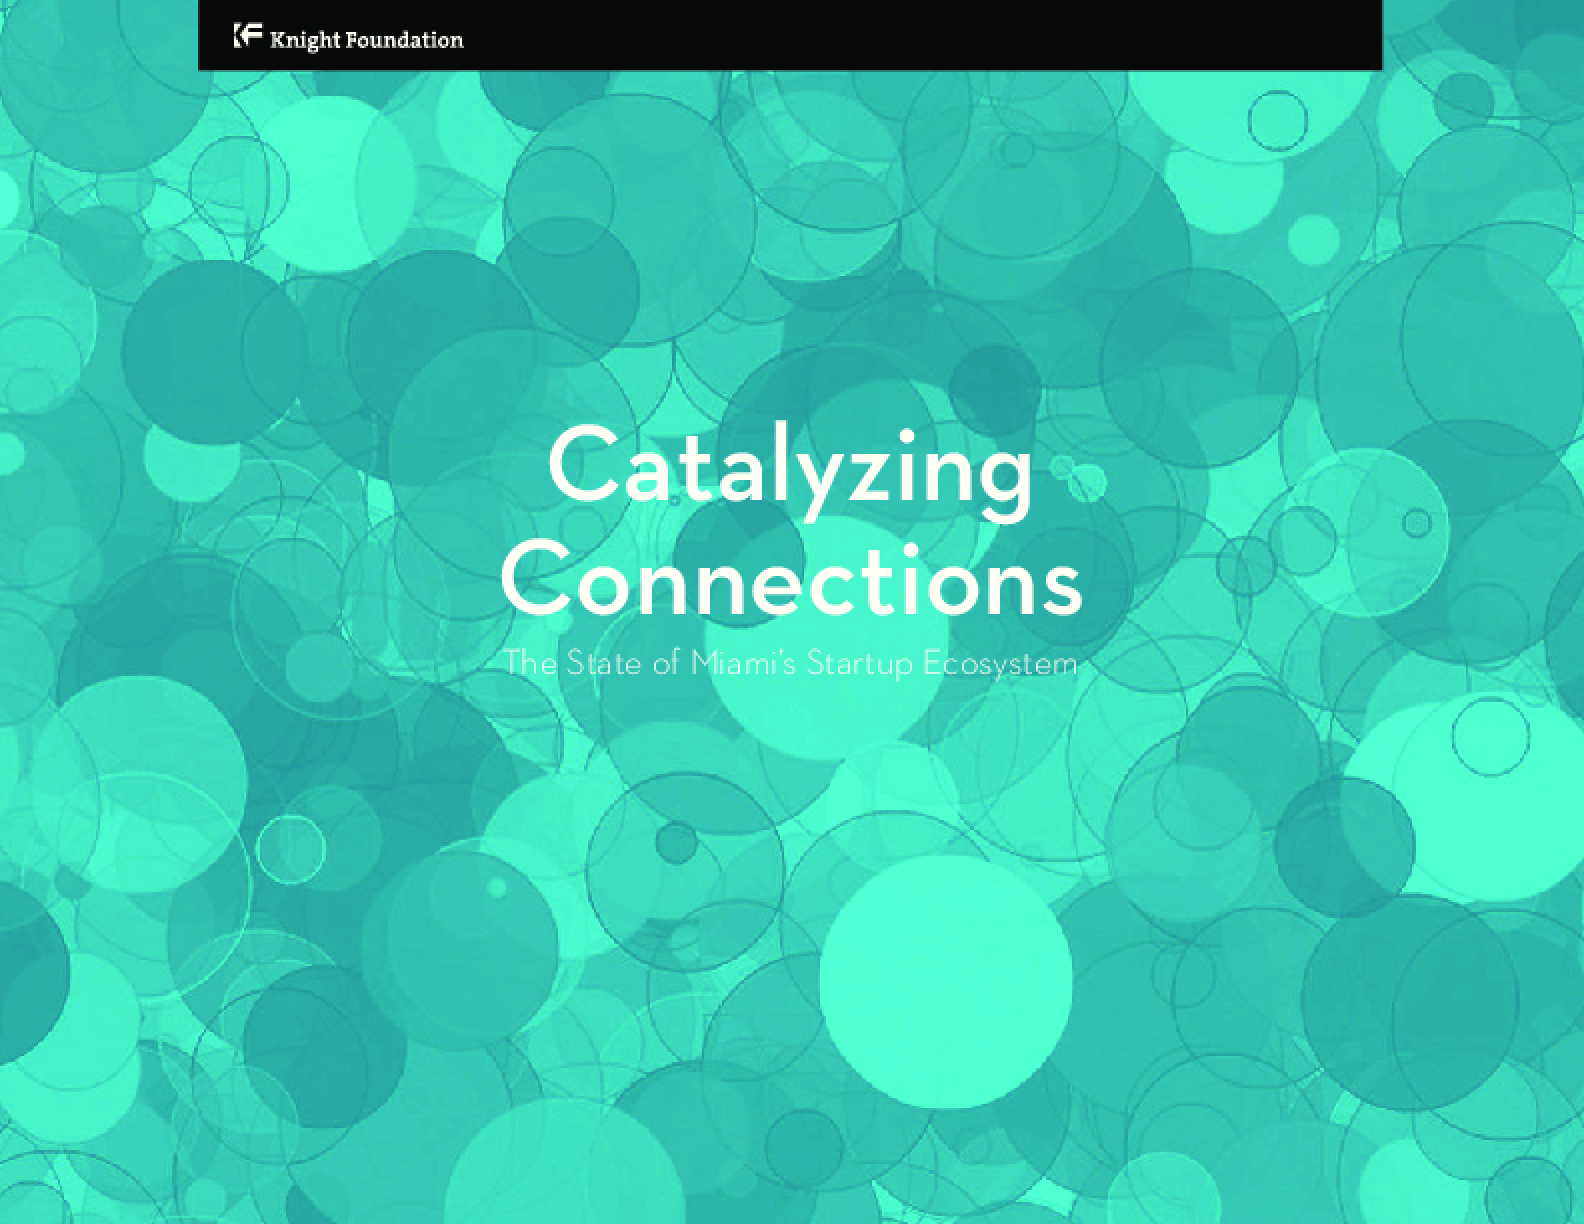 Catalyzing Connections: The State of Miami's Startup Ecosystem